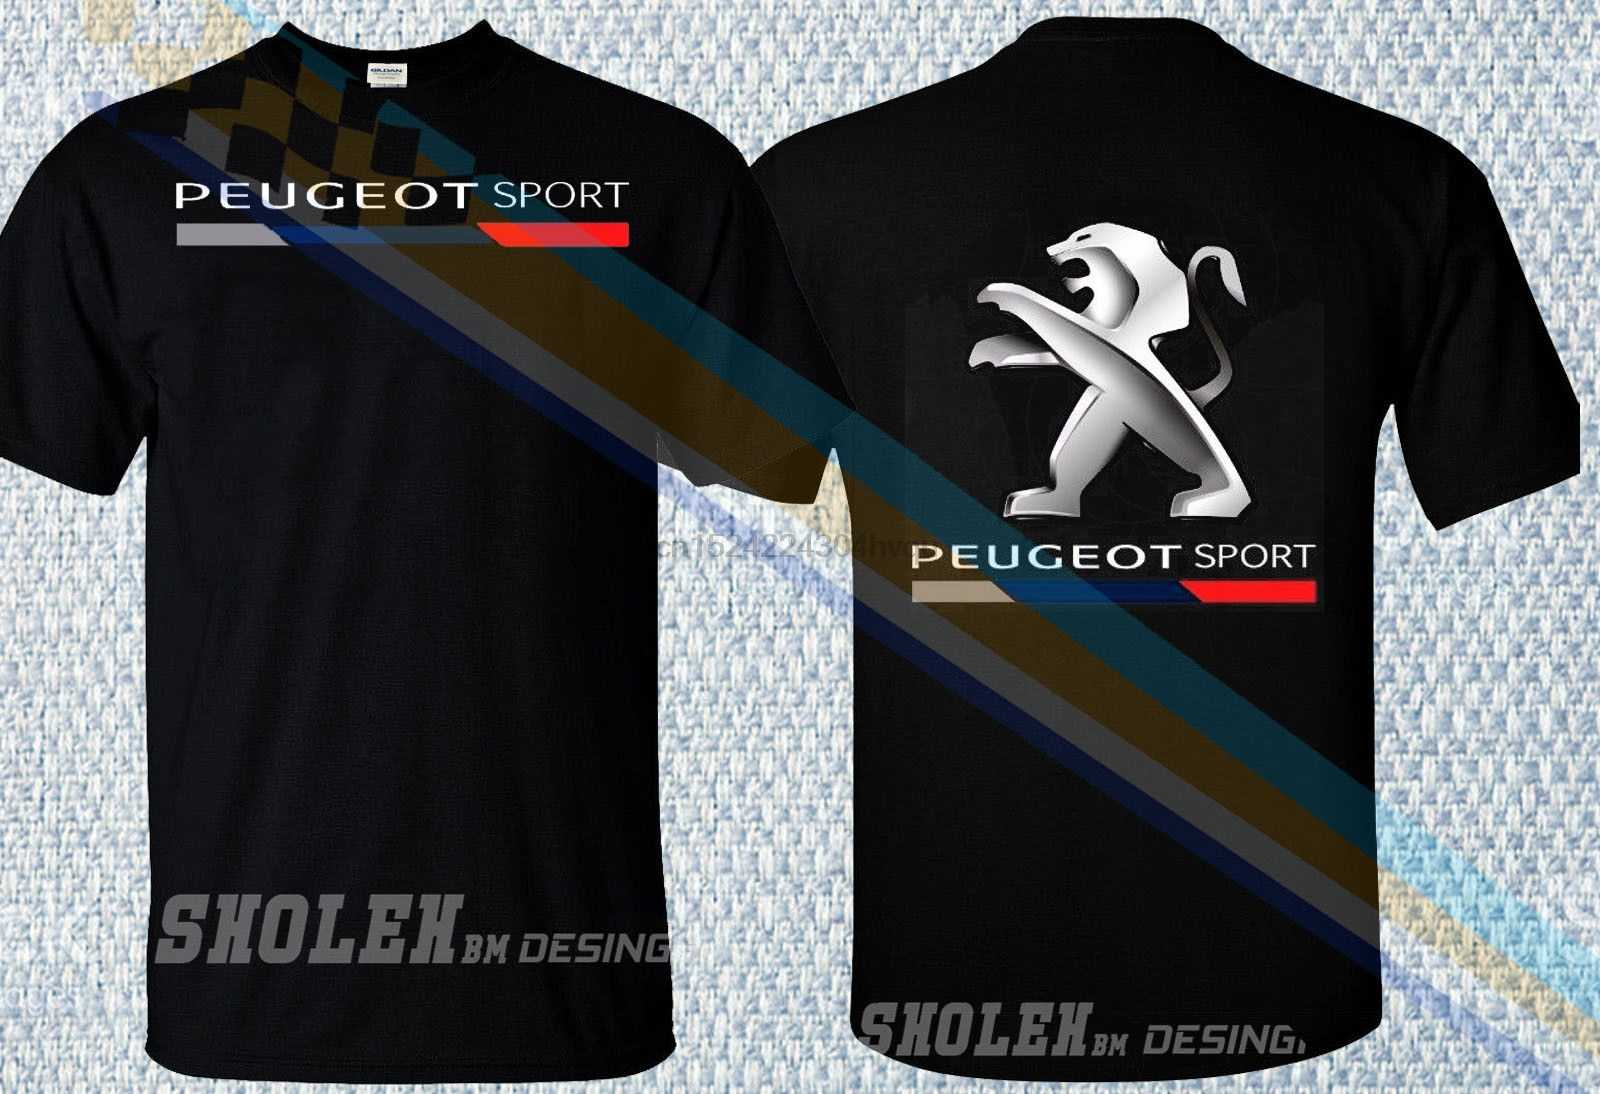 9d2c67b8 Detail Feedback Questions about LIMITED T SHIRT PEUGEOT SPORT RALLY ...